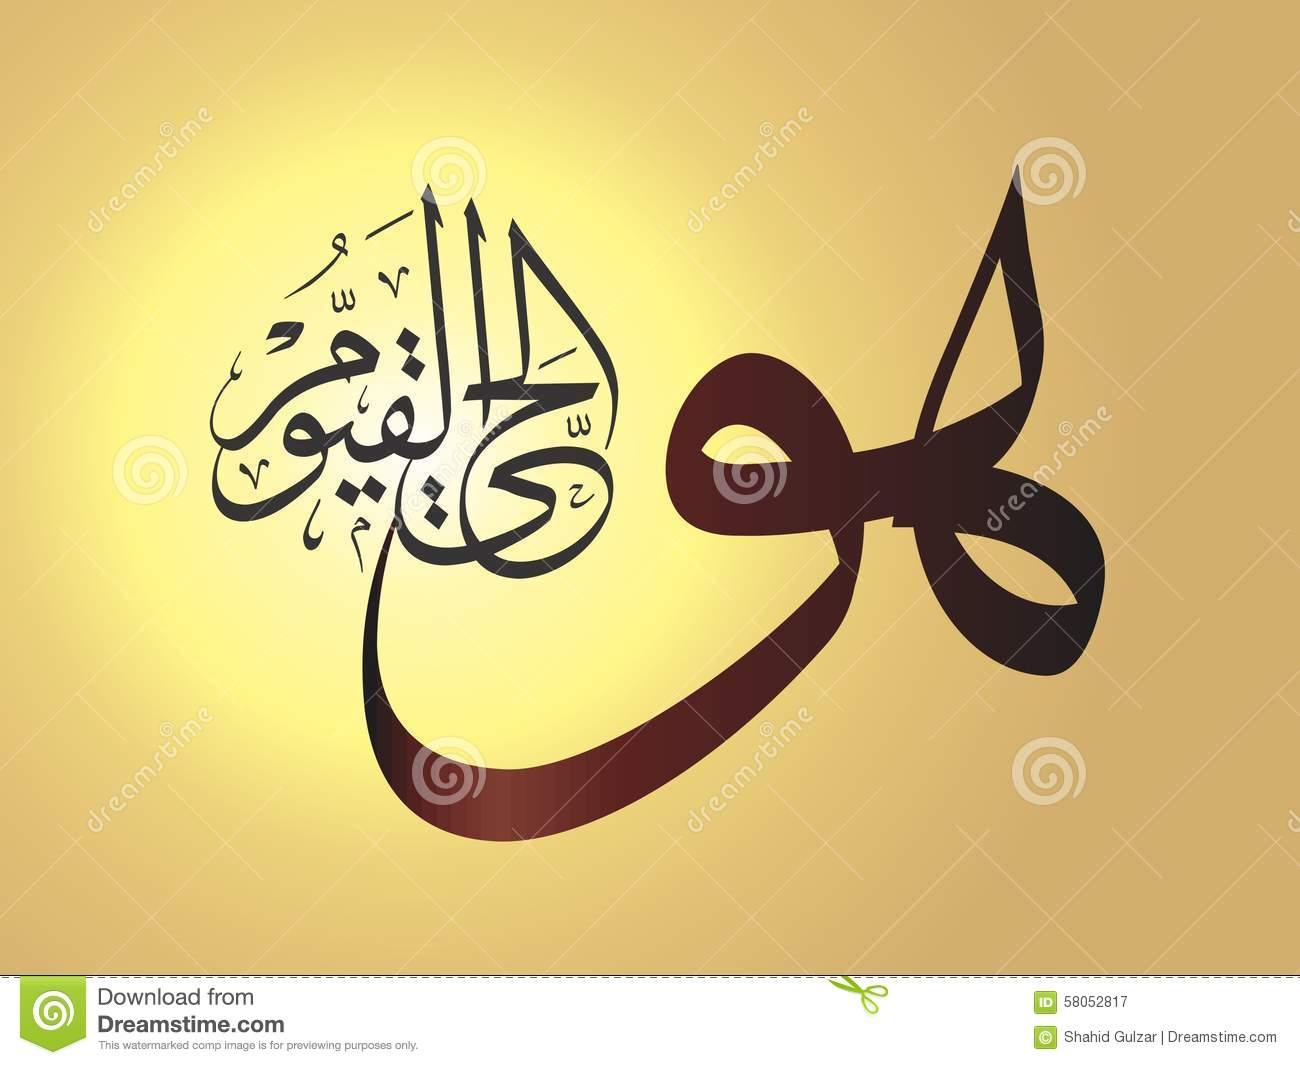 Islamic calligraphy wallpaper poster howal hayul qayum Allah calligraphy wallpaper